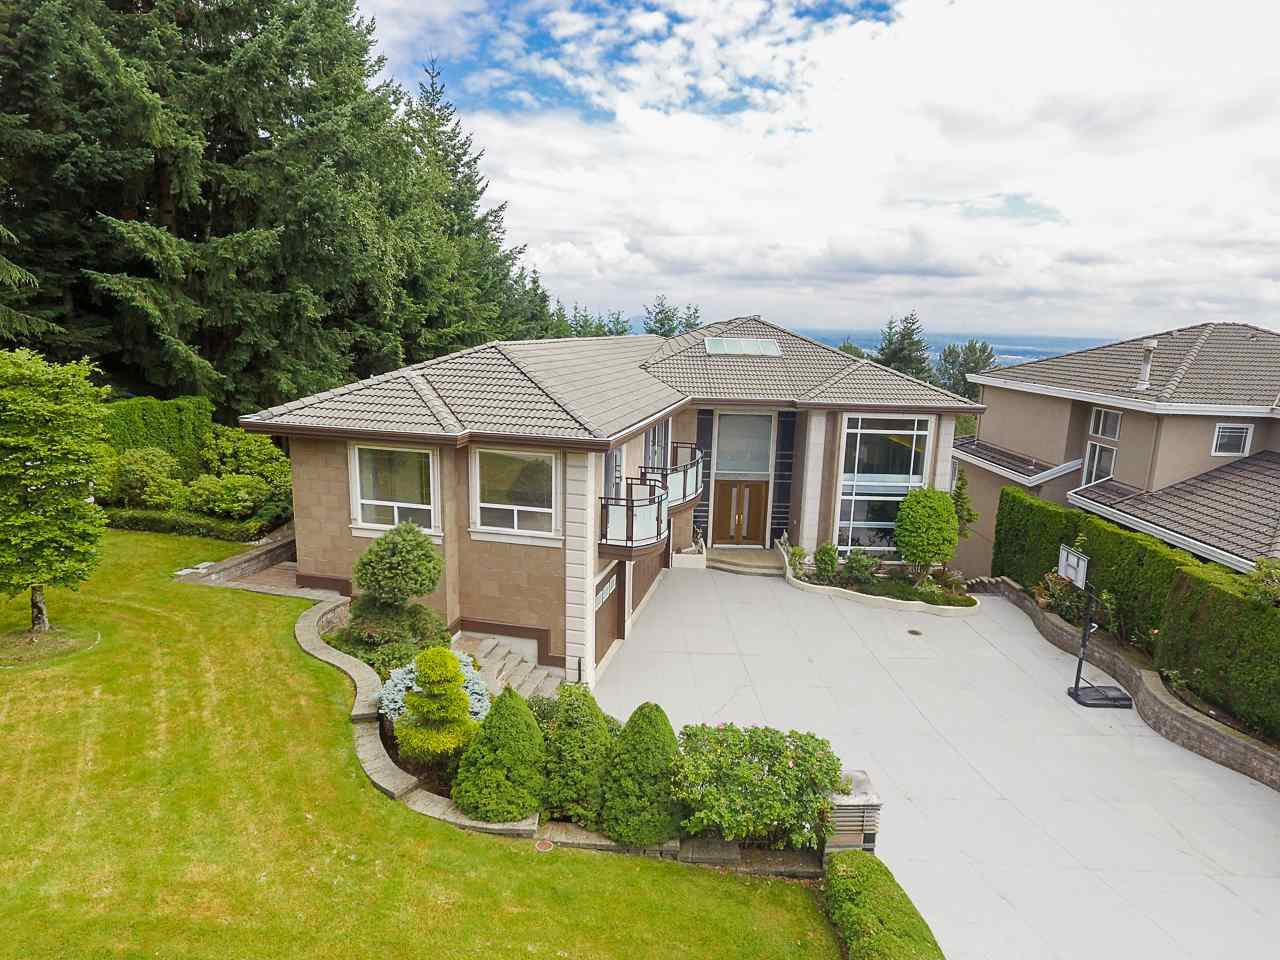 Main Photo: 1529 ROCKWOOD Court in Coquitlam: Westwood Plateau House for sale : MLS®# R2390471